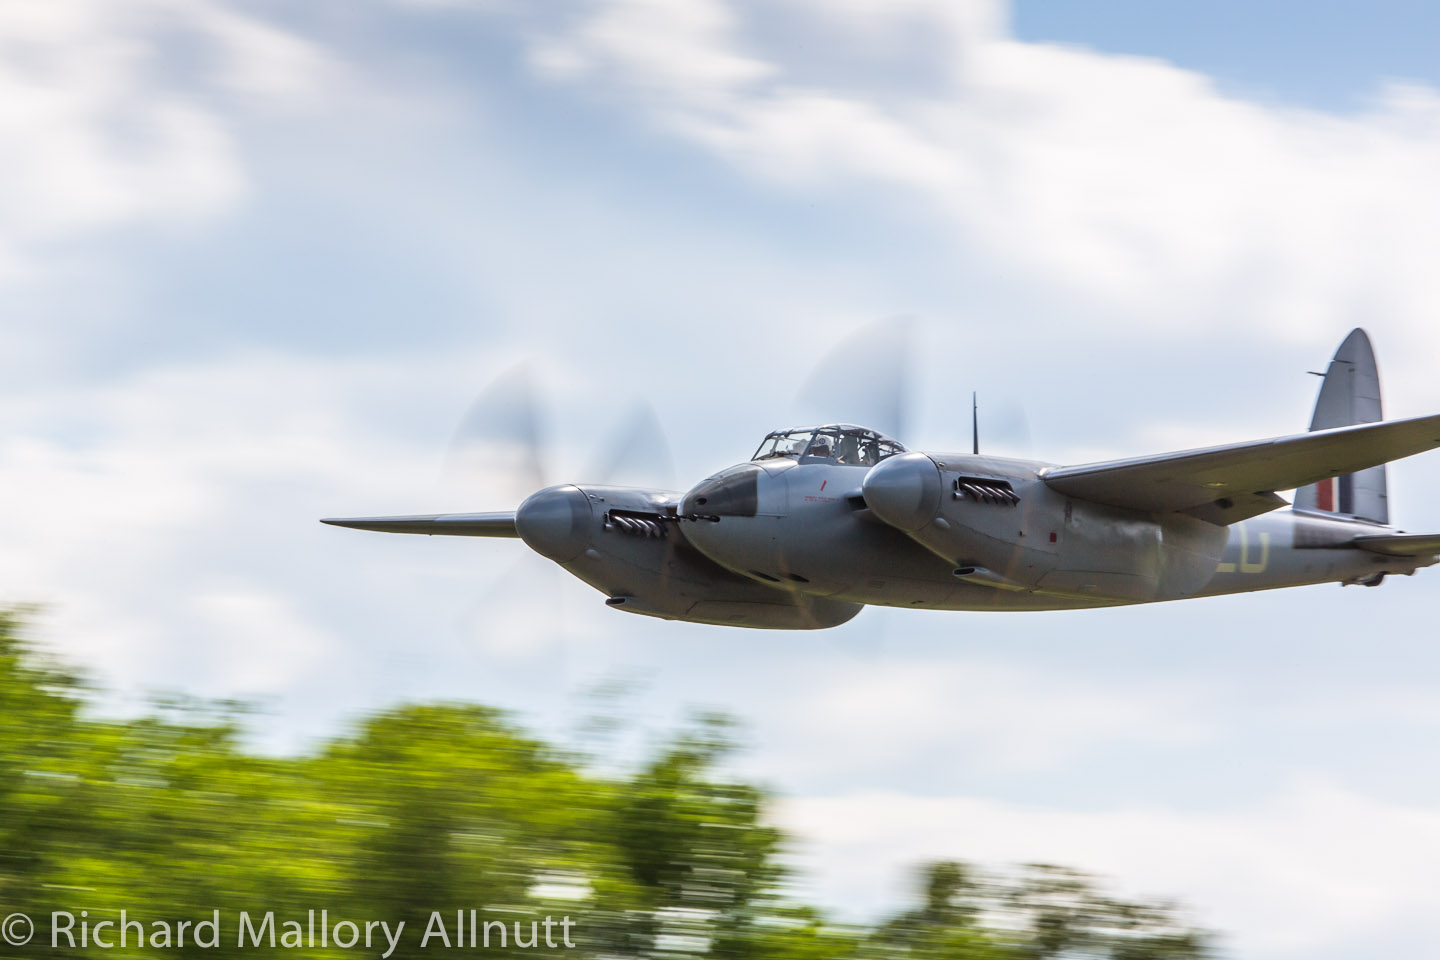 _C8A0579 - Richard Mallory Allnutt photo - Warbirds Over the Beach - Military Aviation Museum - Pungo, VA - May 17, 2014